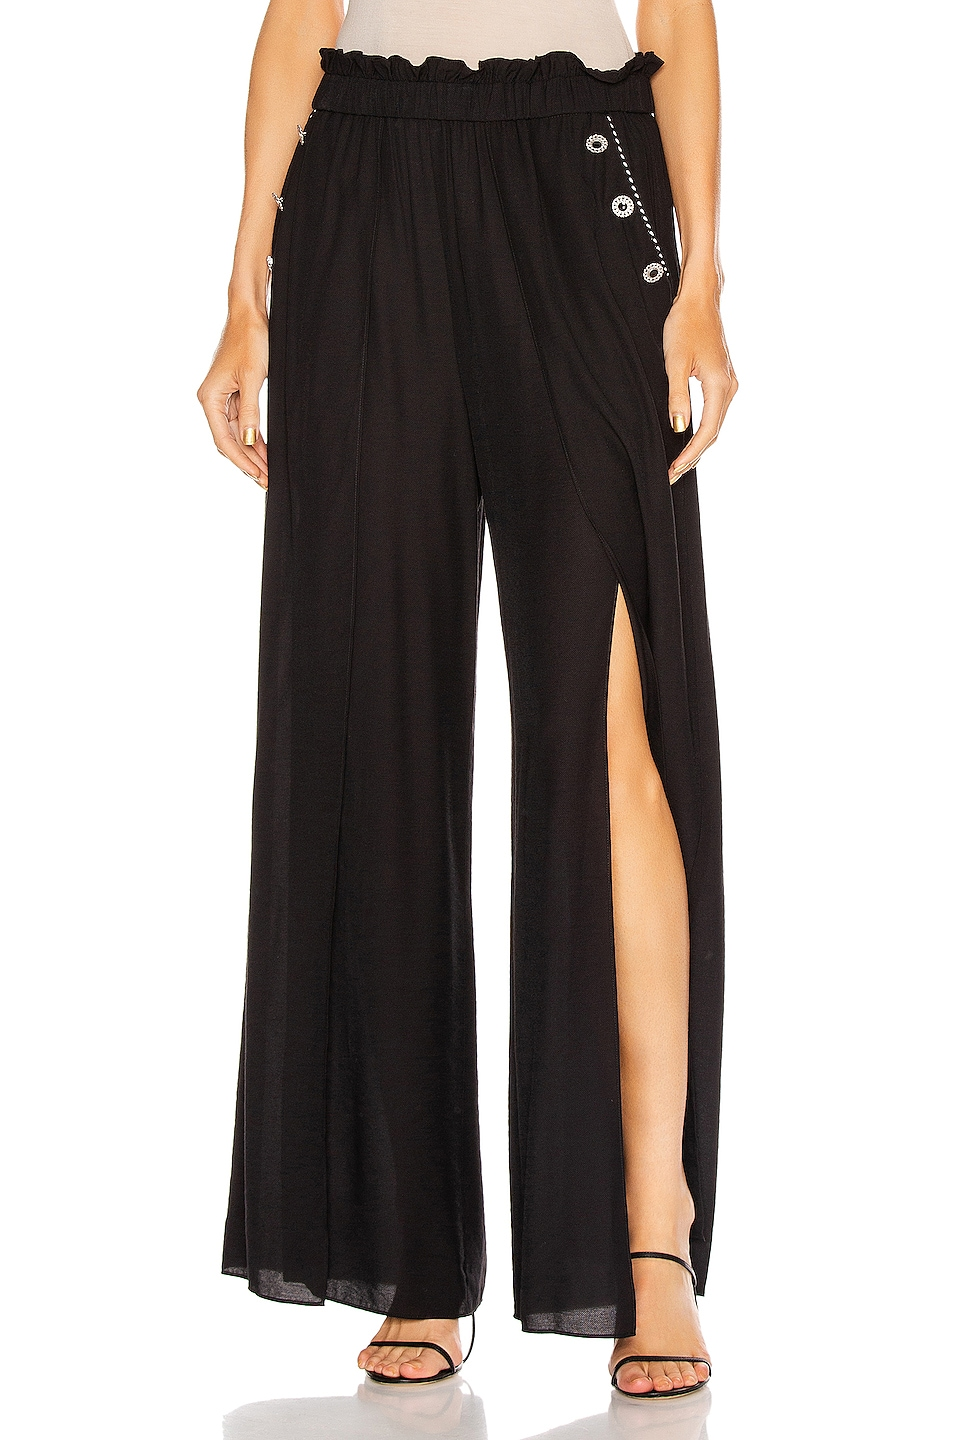 Image 1 of JONATHAN SIMKHAI Piped High Waisted Wide Leg Pant in Black